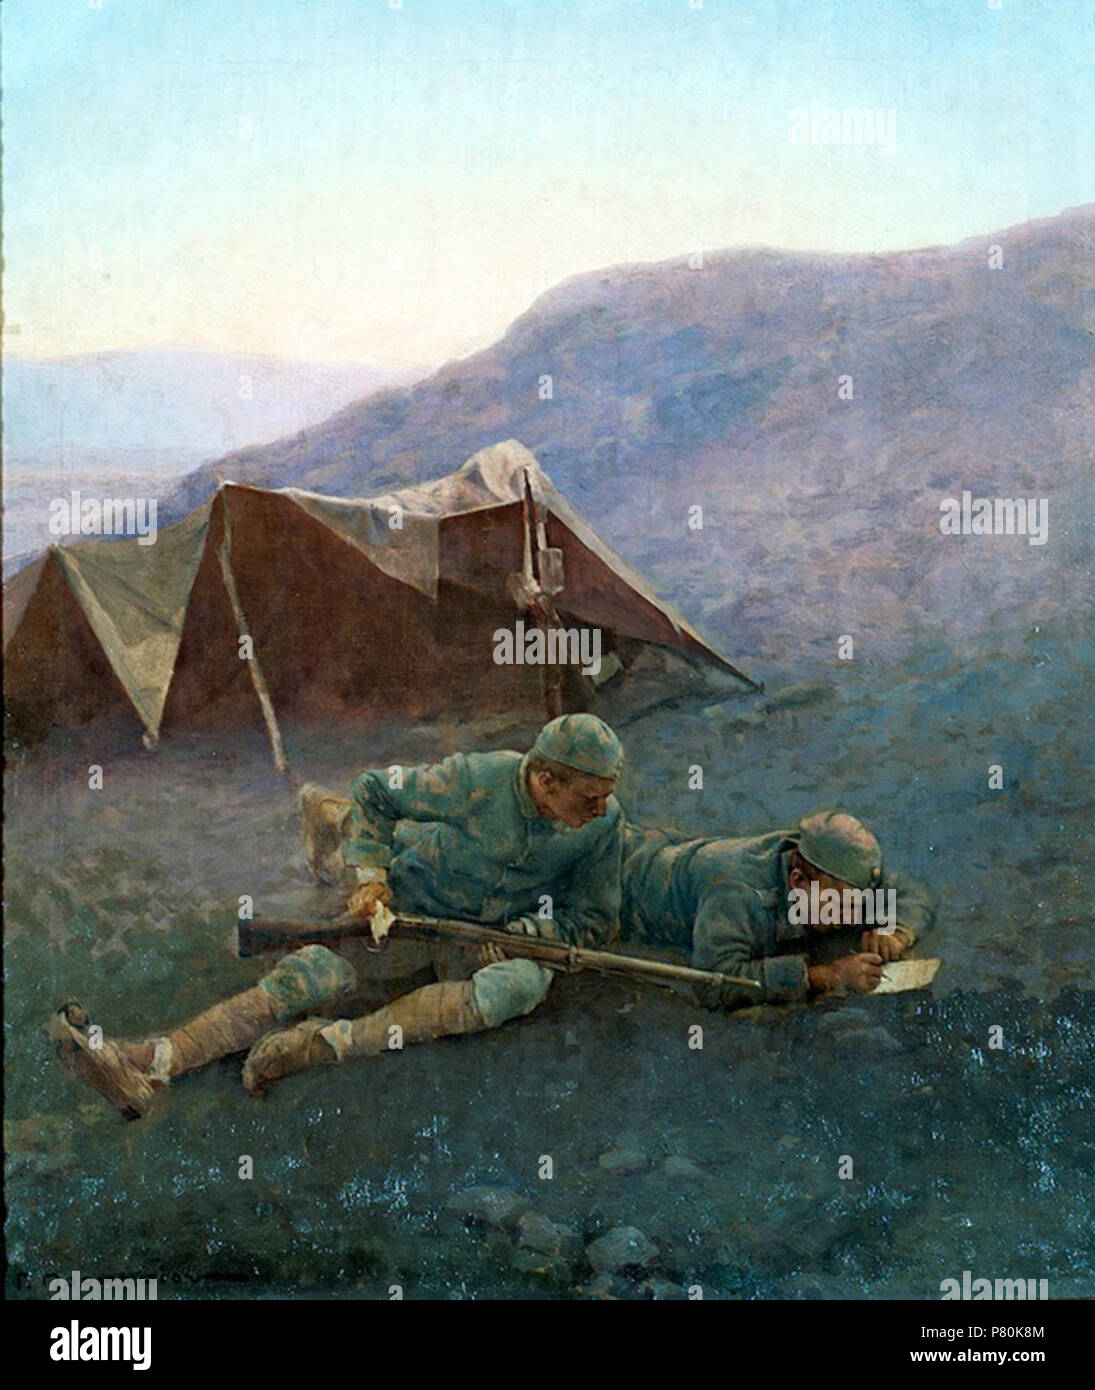 English: Resting in battlefront . 1921 321 PROKOPIOU-ANAPAYSI - Stock Image